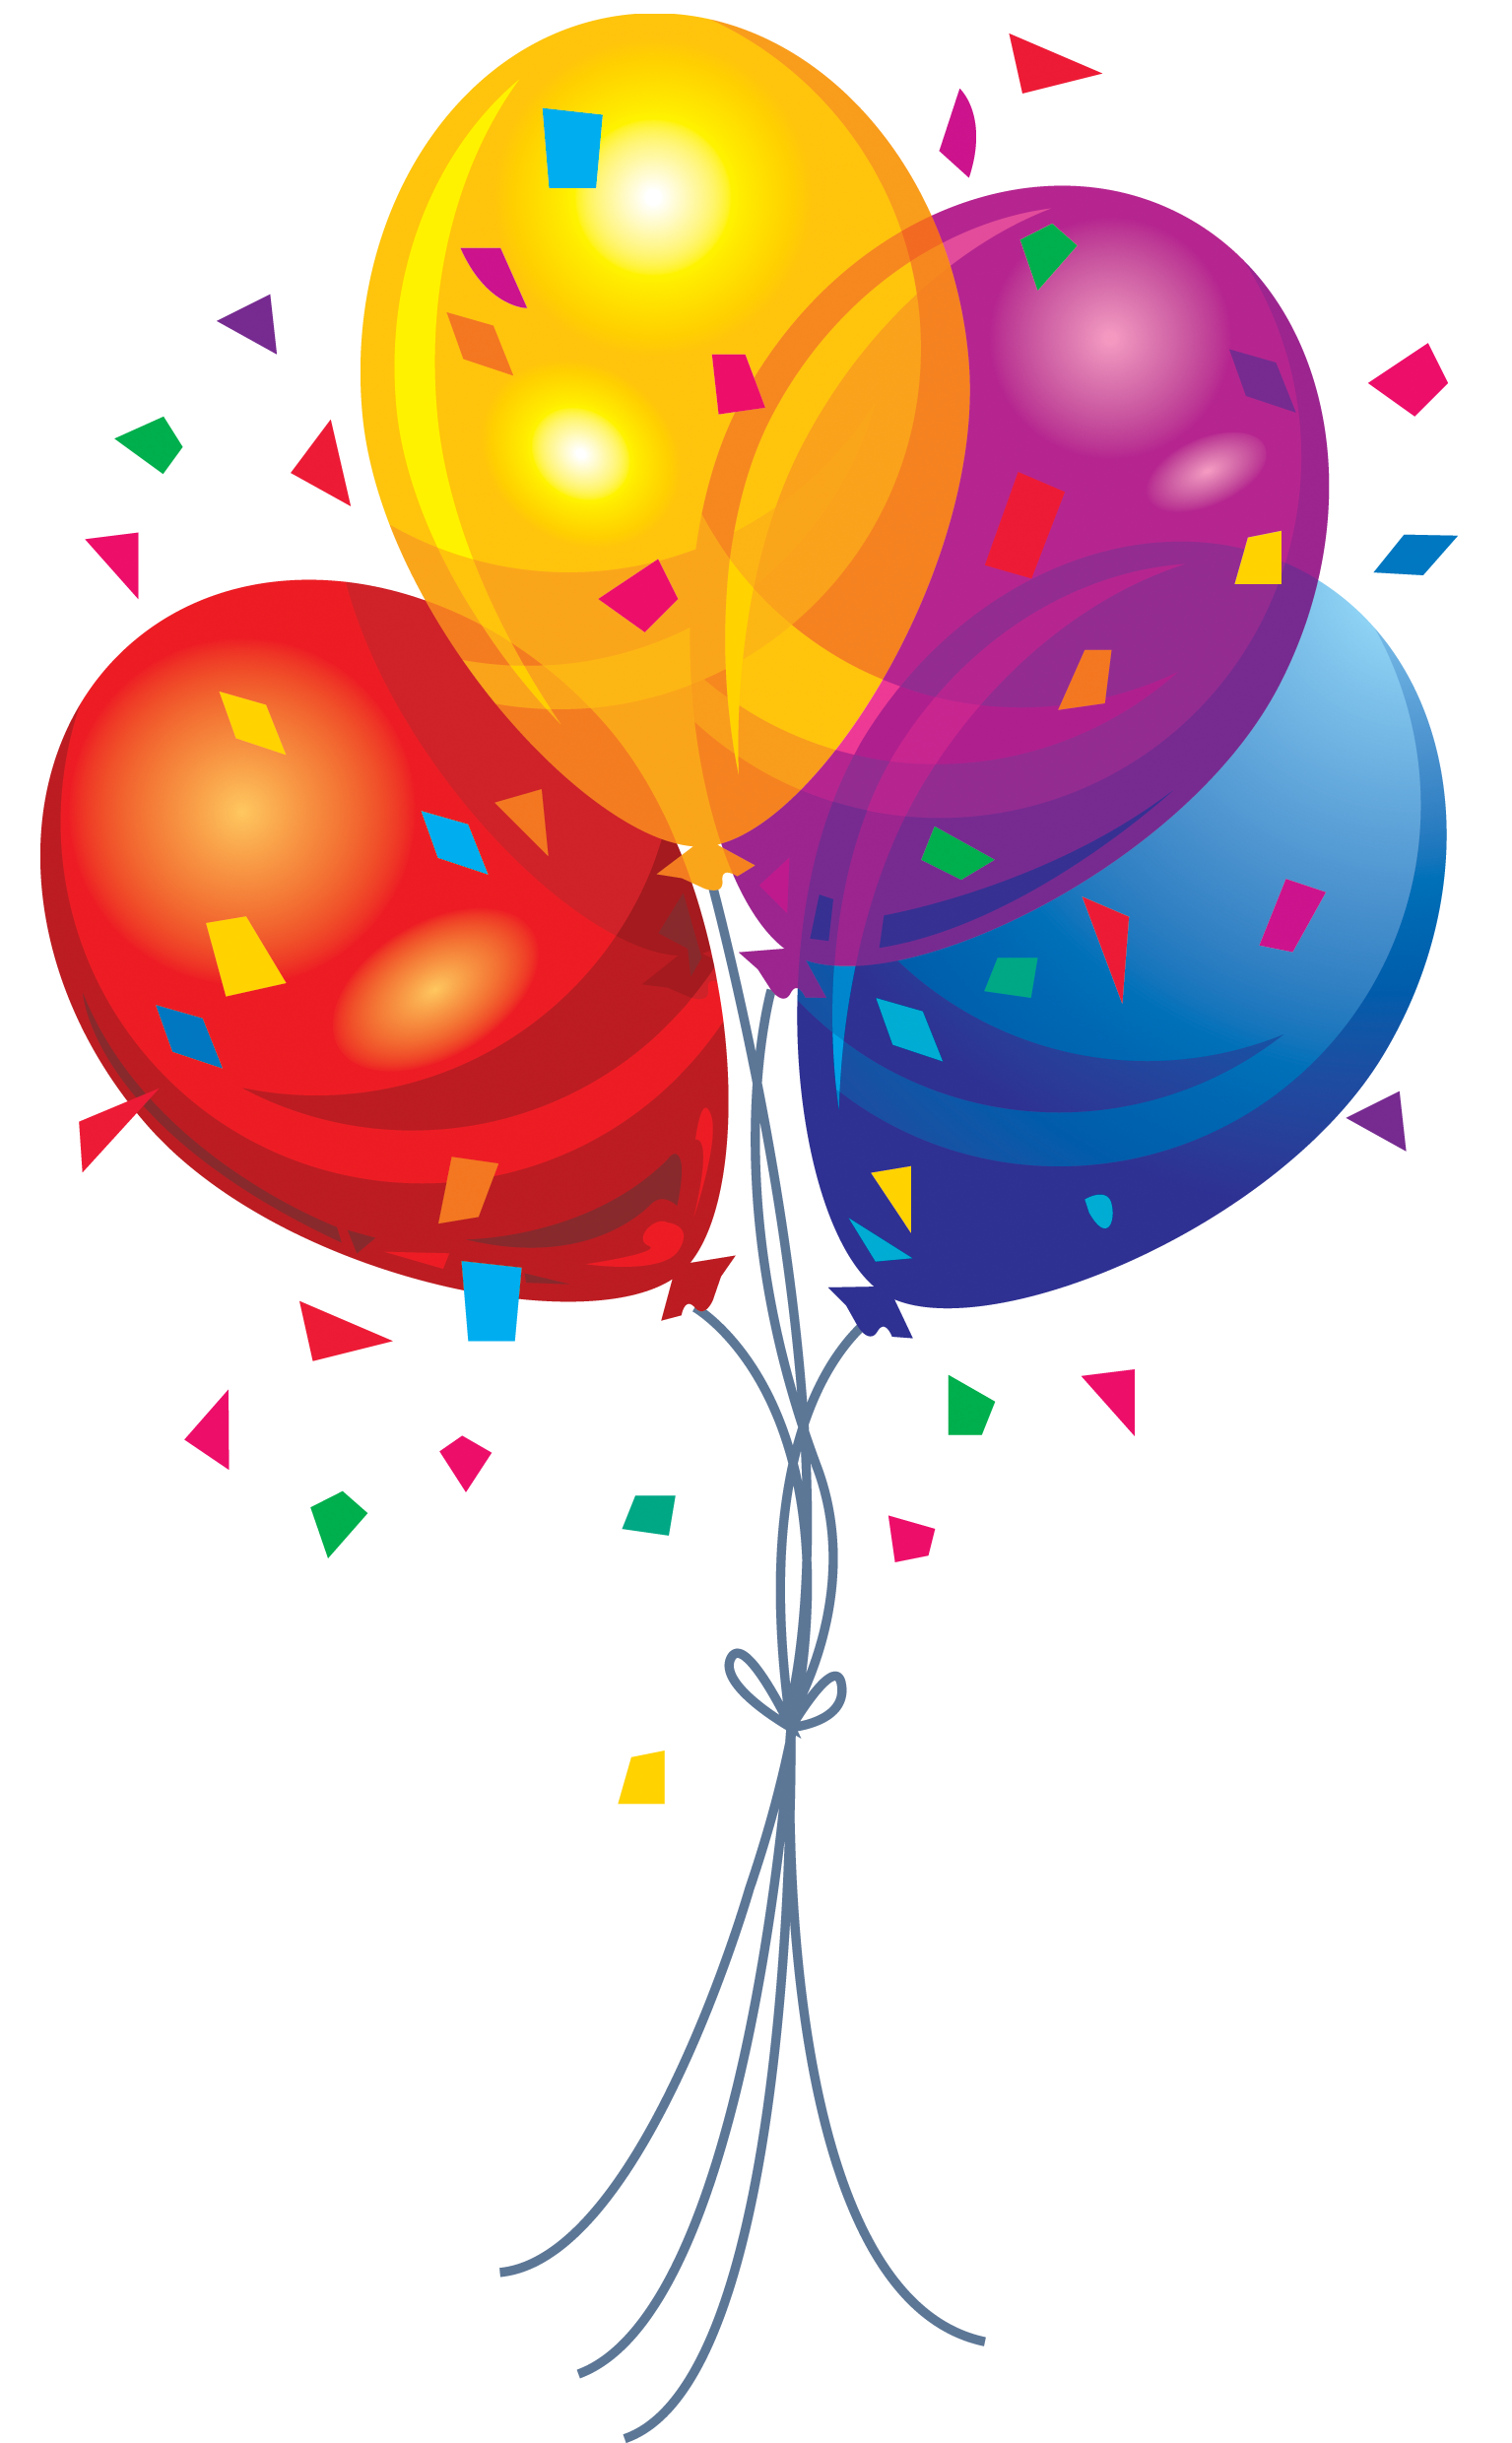 Balloon png greetings pinterest. Surprise clipart birthday ballon